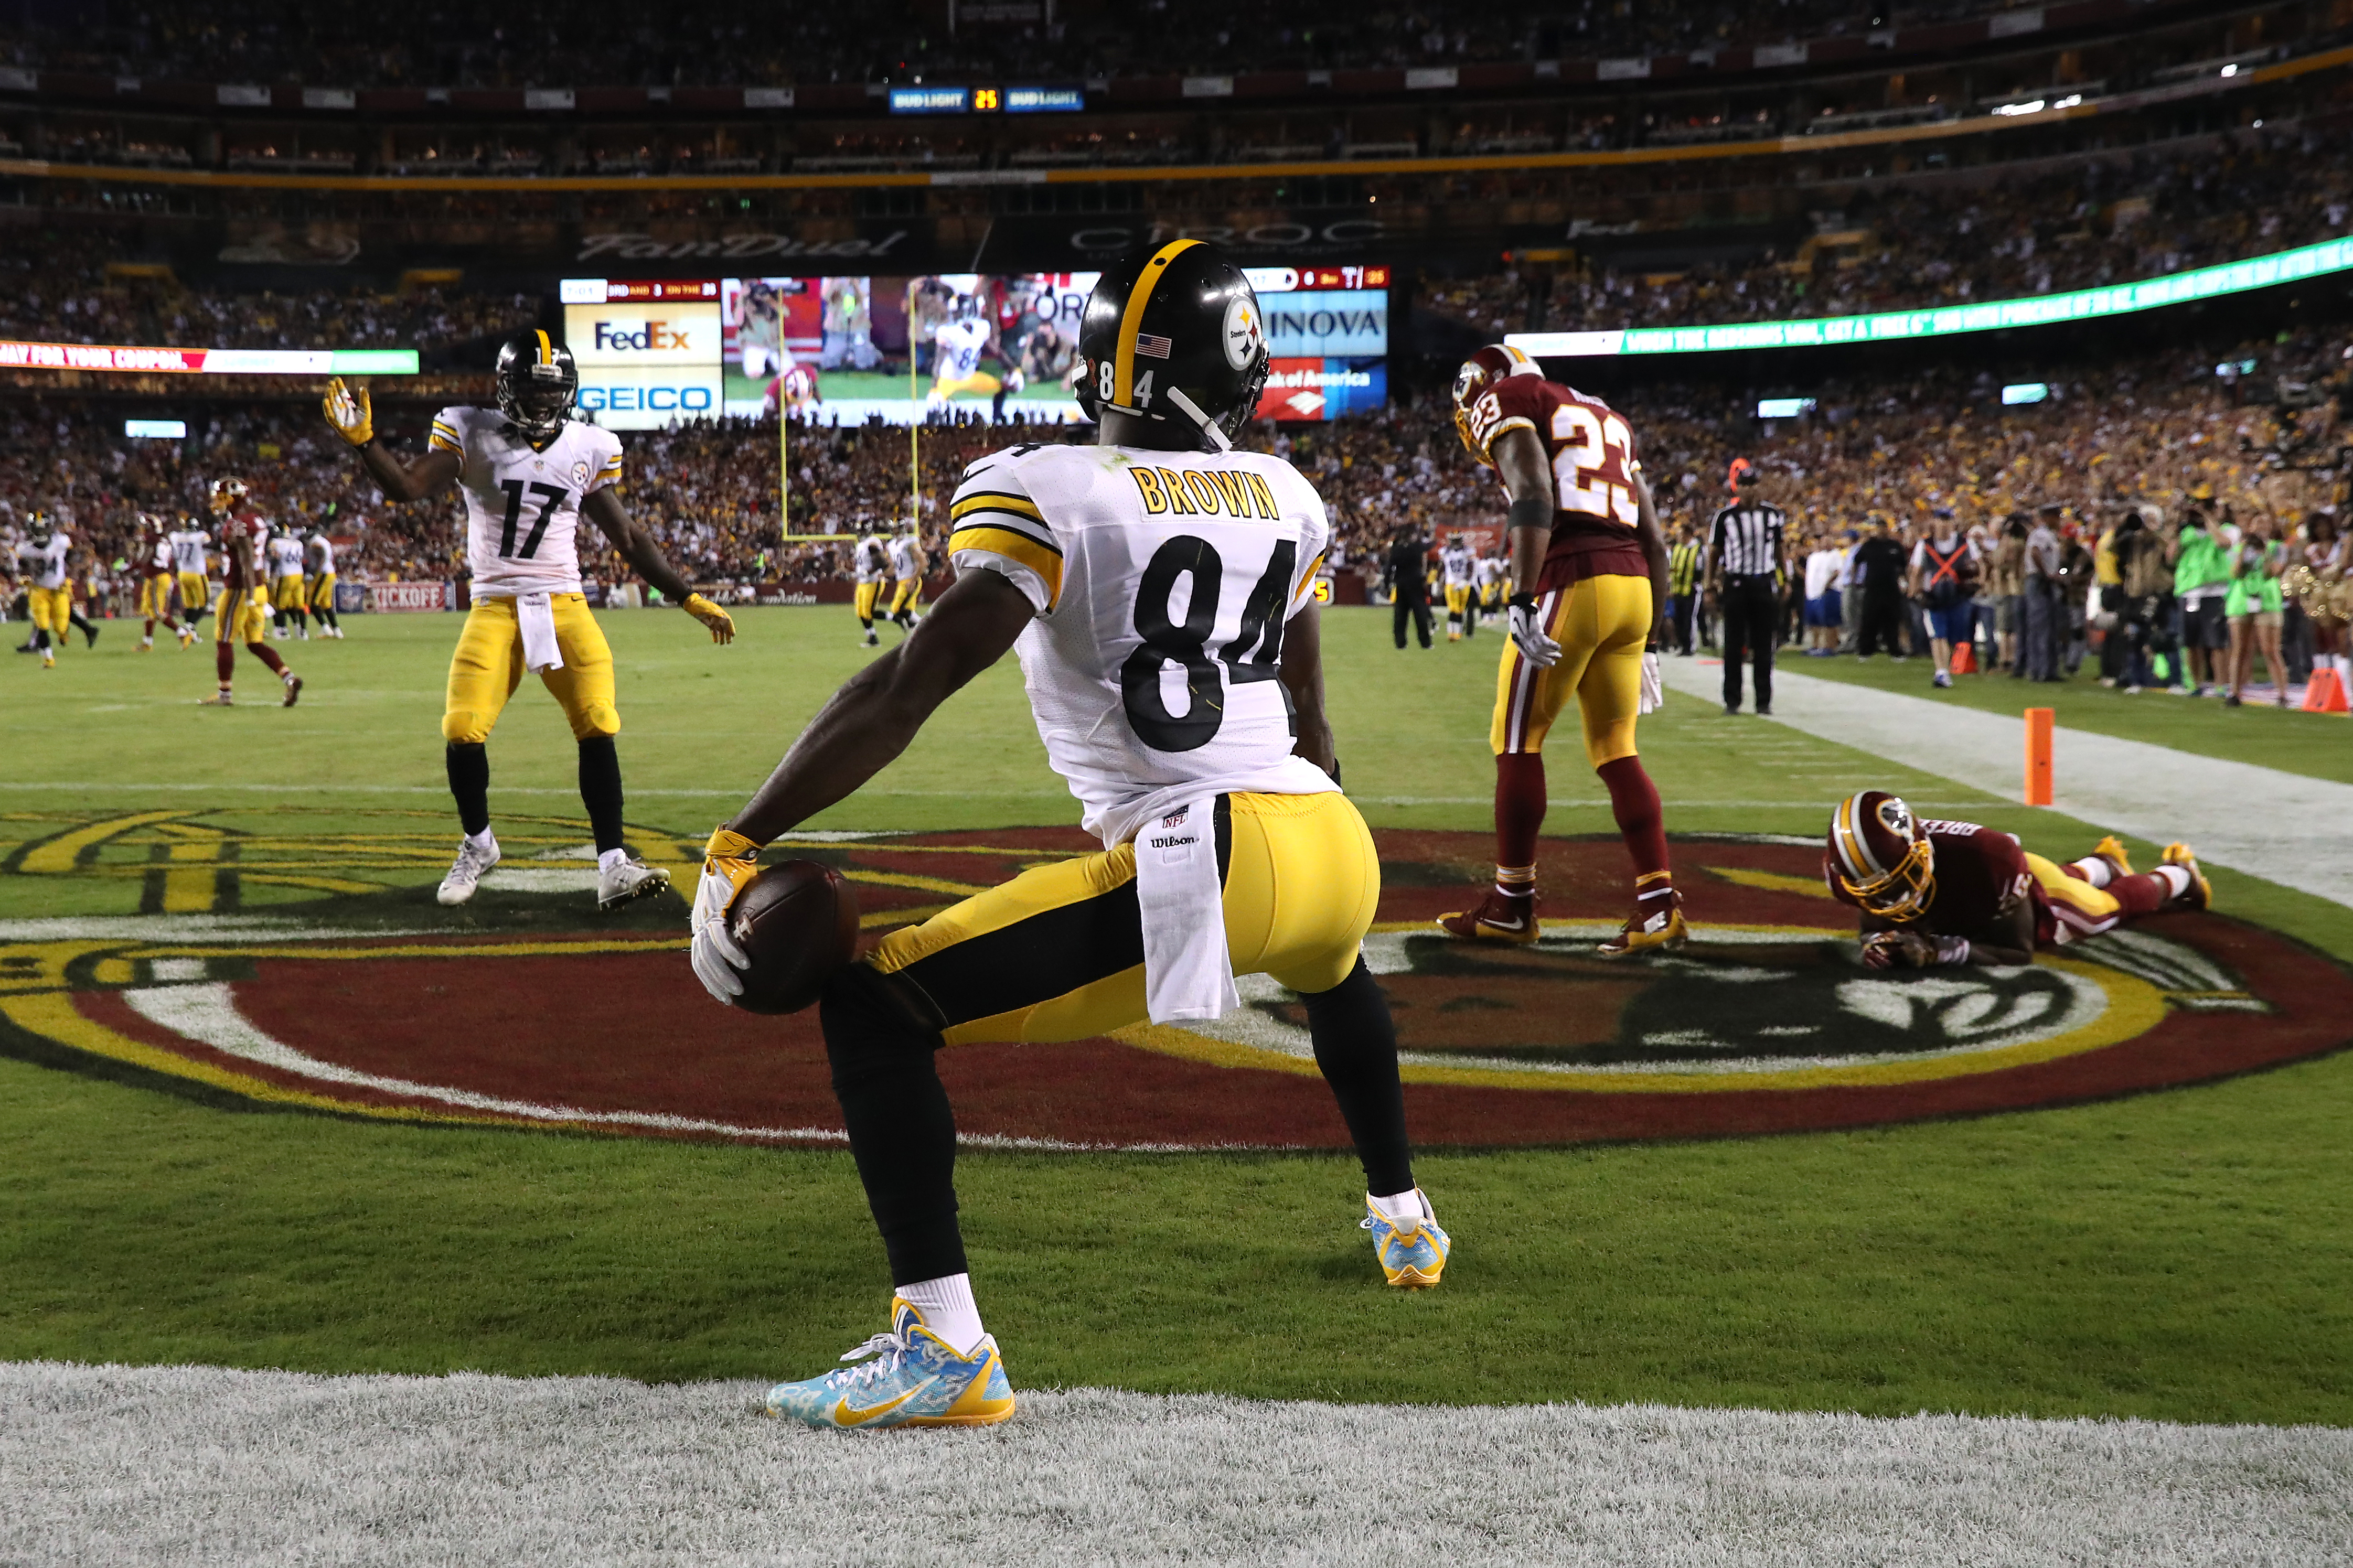 Wide receiver Antonio Brown #84 of the Pittsburgh Steelers celebrates after scoring a third quarter touchdown against the Washington Redskins at FedExField on September 12, 2016 in Landover, Maryland. (Photo by Rob Carr/Getty Images)